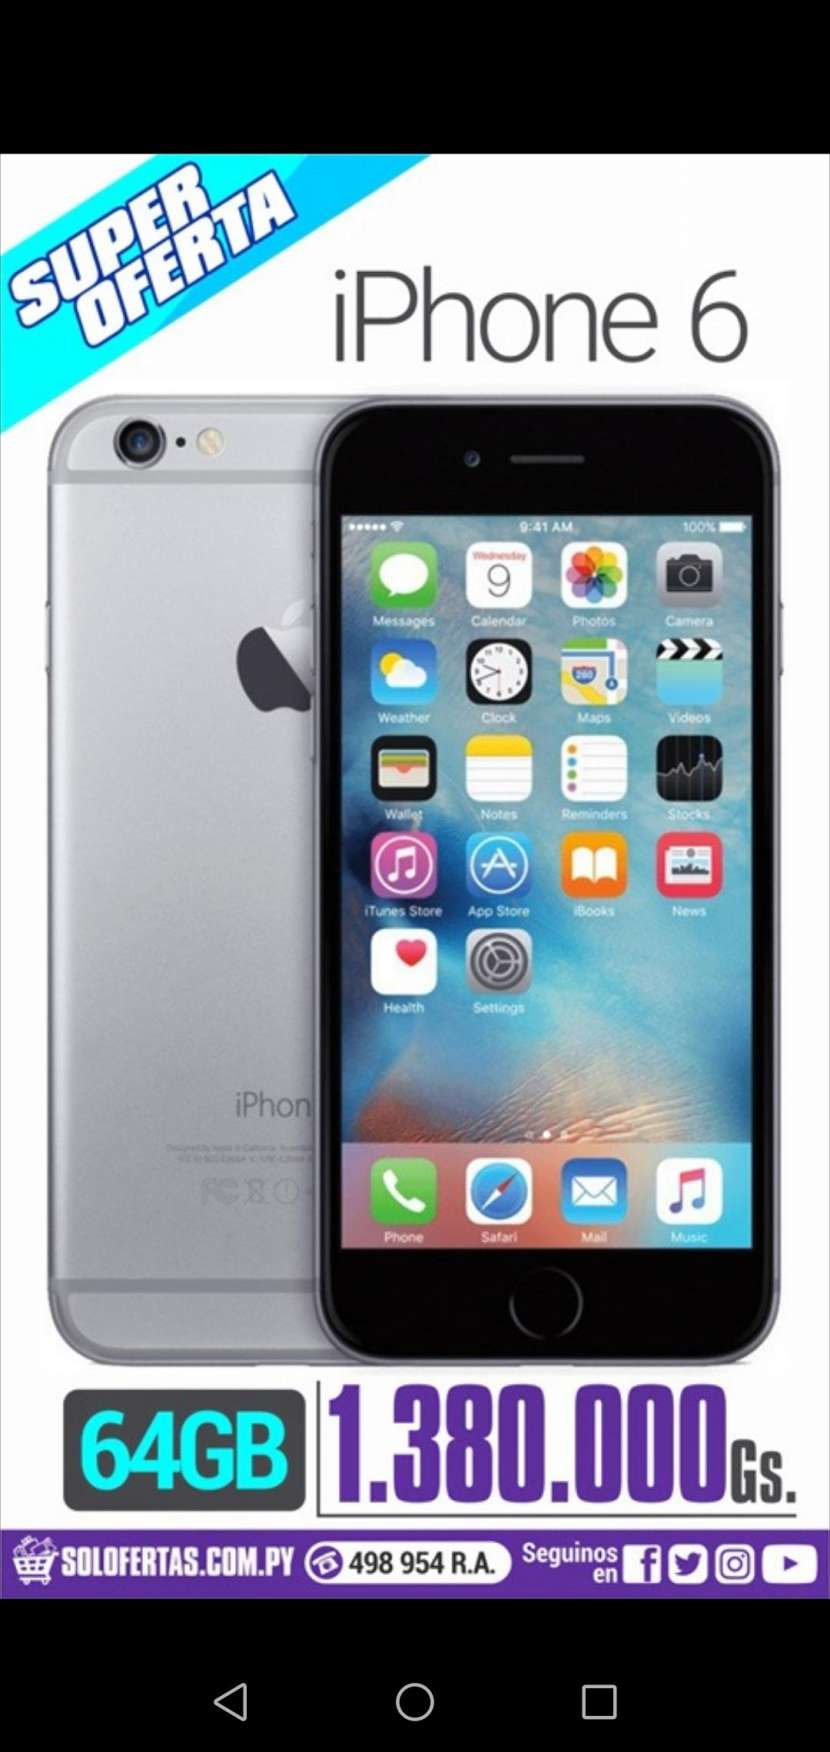 iPhone 6 de 64 gb space gray - 0